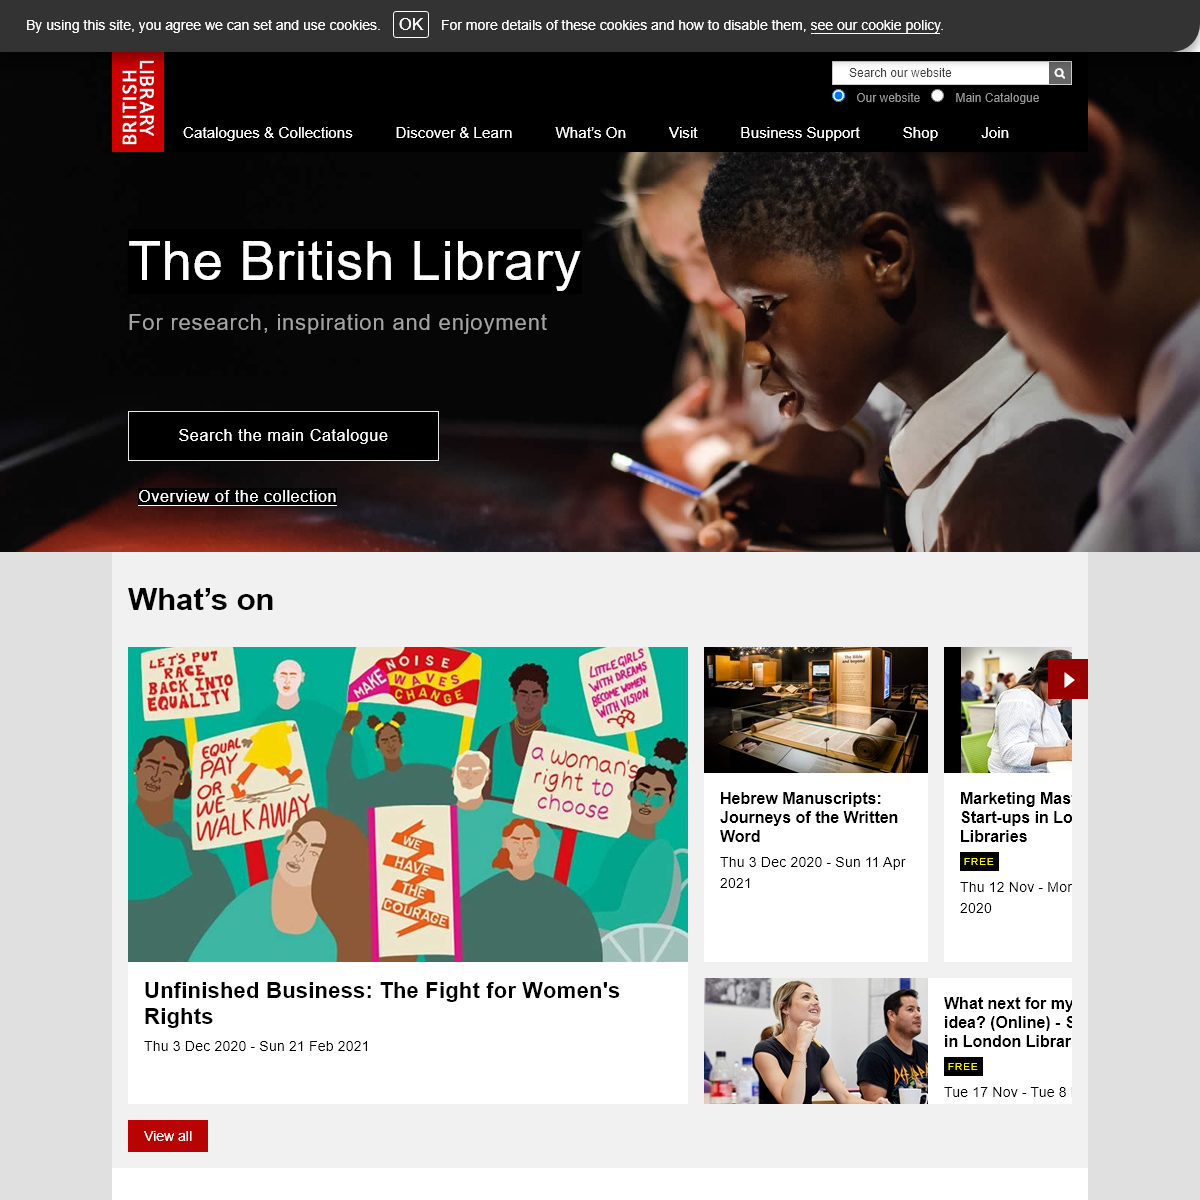 The British Library - The British Library